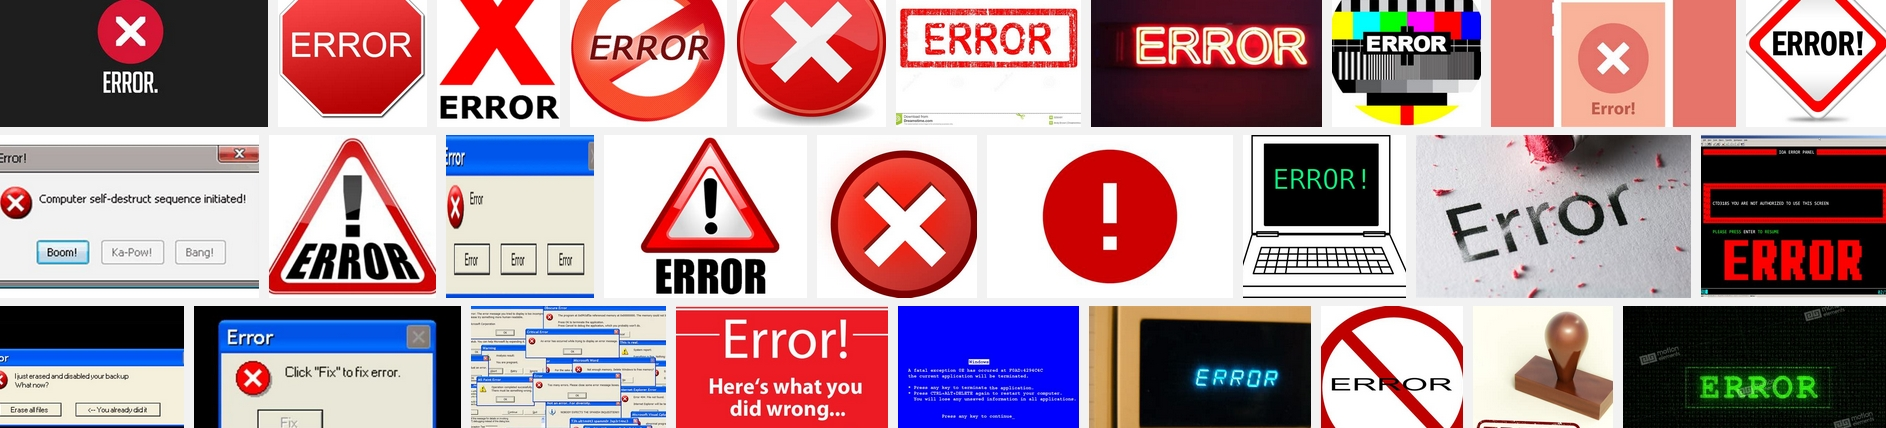 some random images of 'error'